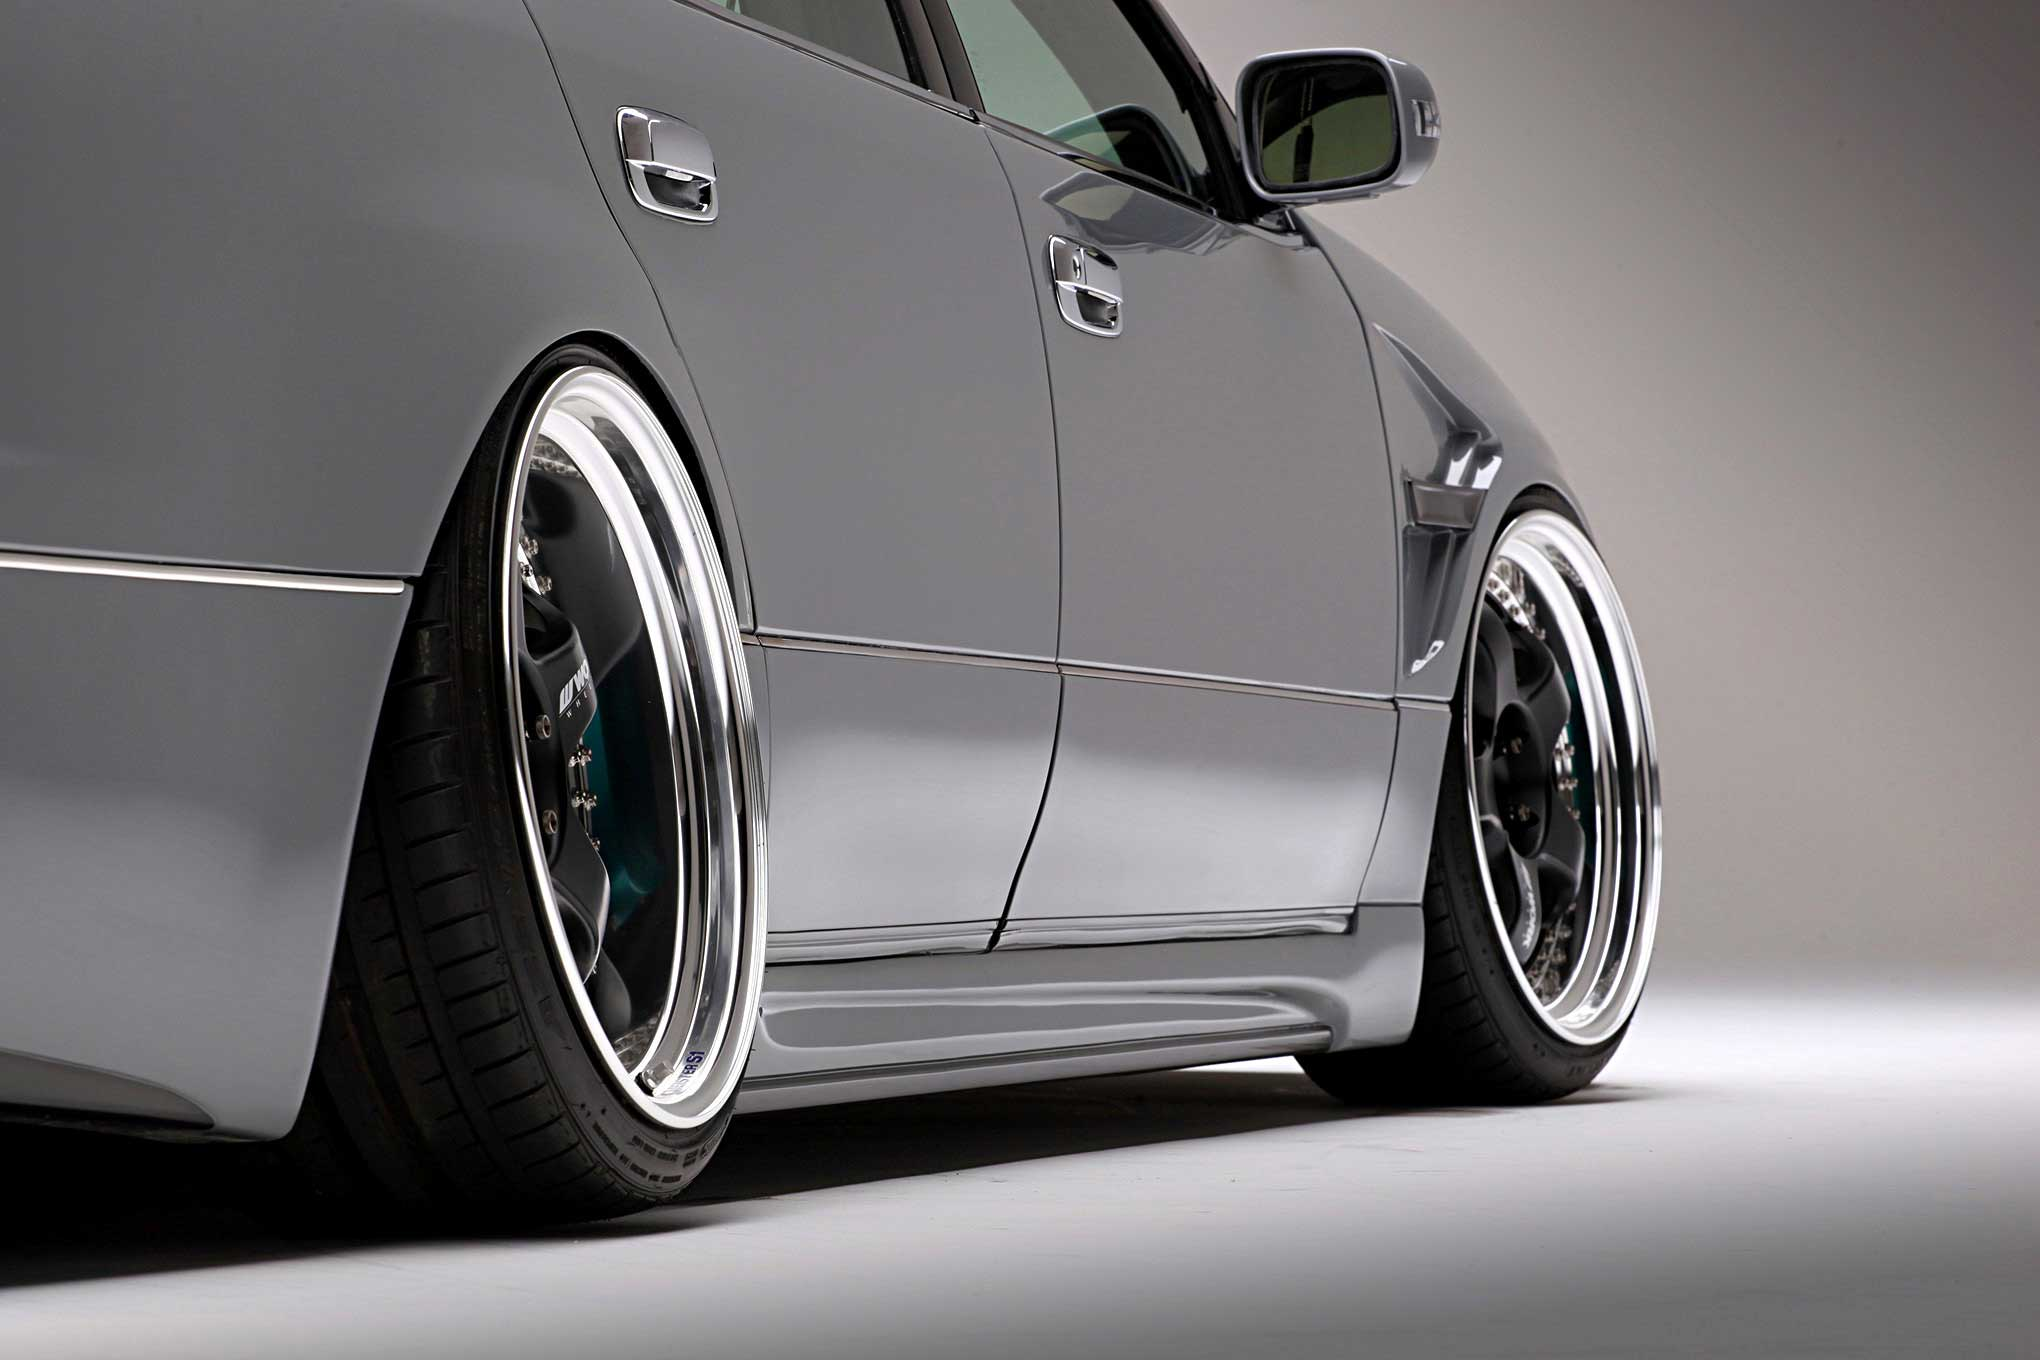 small resolution of 1999 lexus gs300 mode parfume side skirts